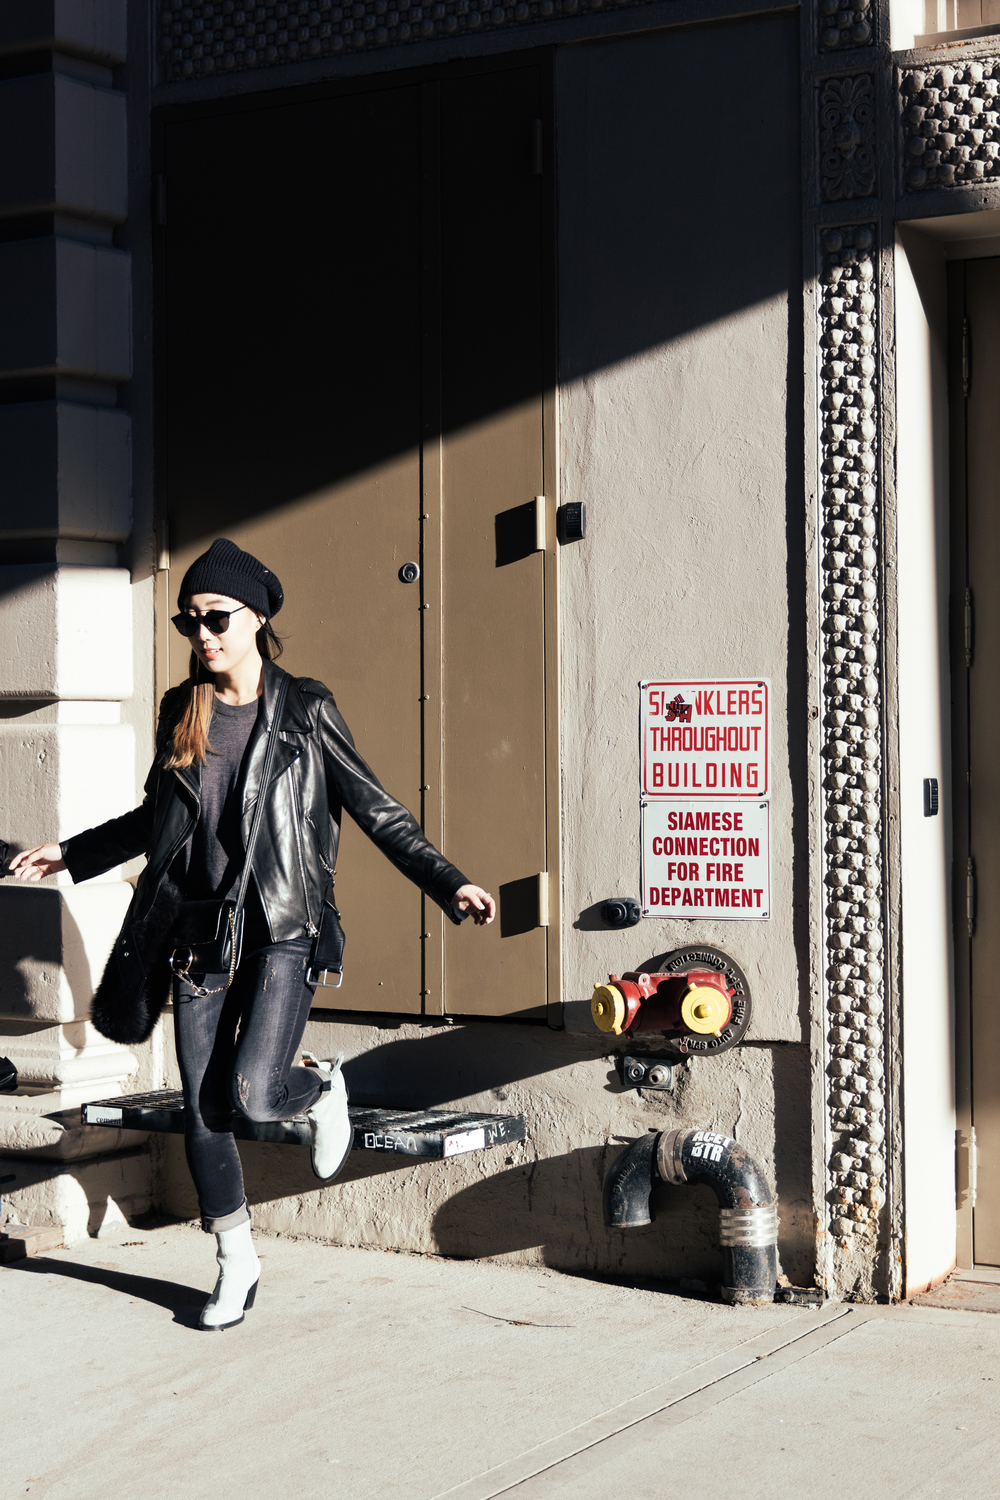 Acne Studios Jacket and Shoes, R13 Denim, Chloe Bag, Maison Margiela Beanie, Dior Sunglasses